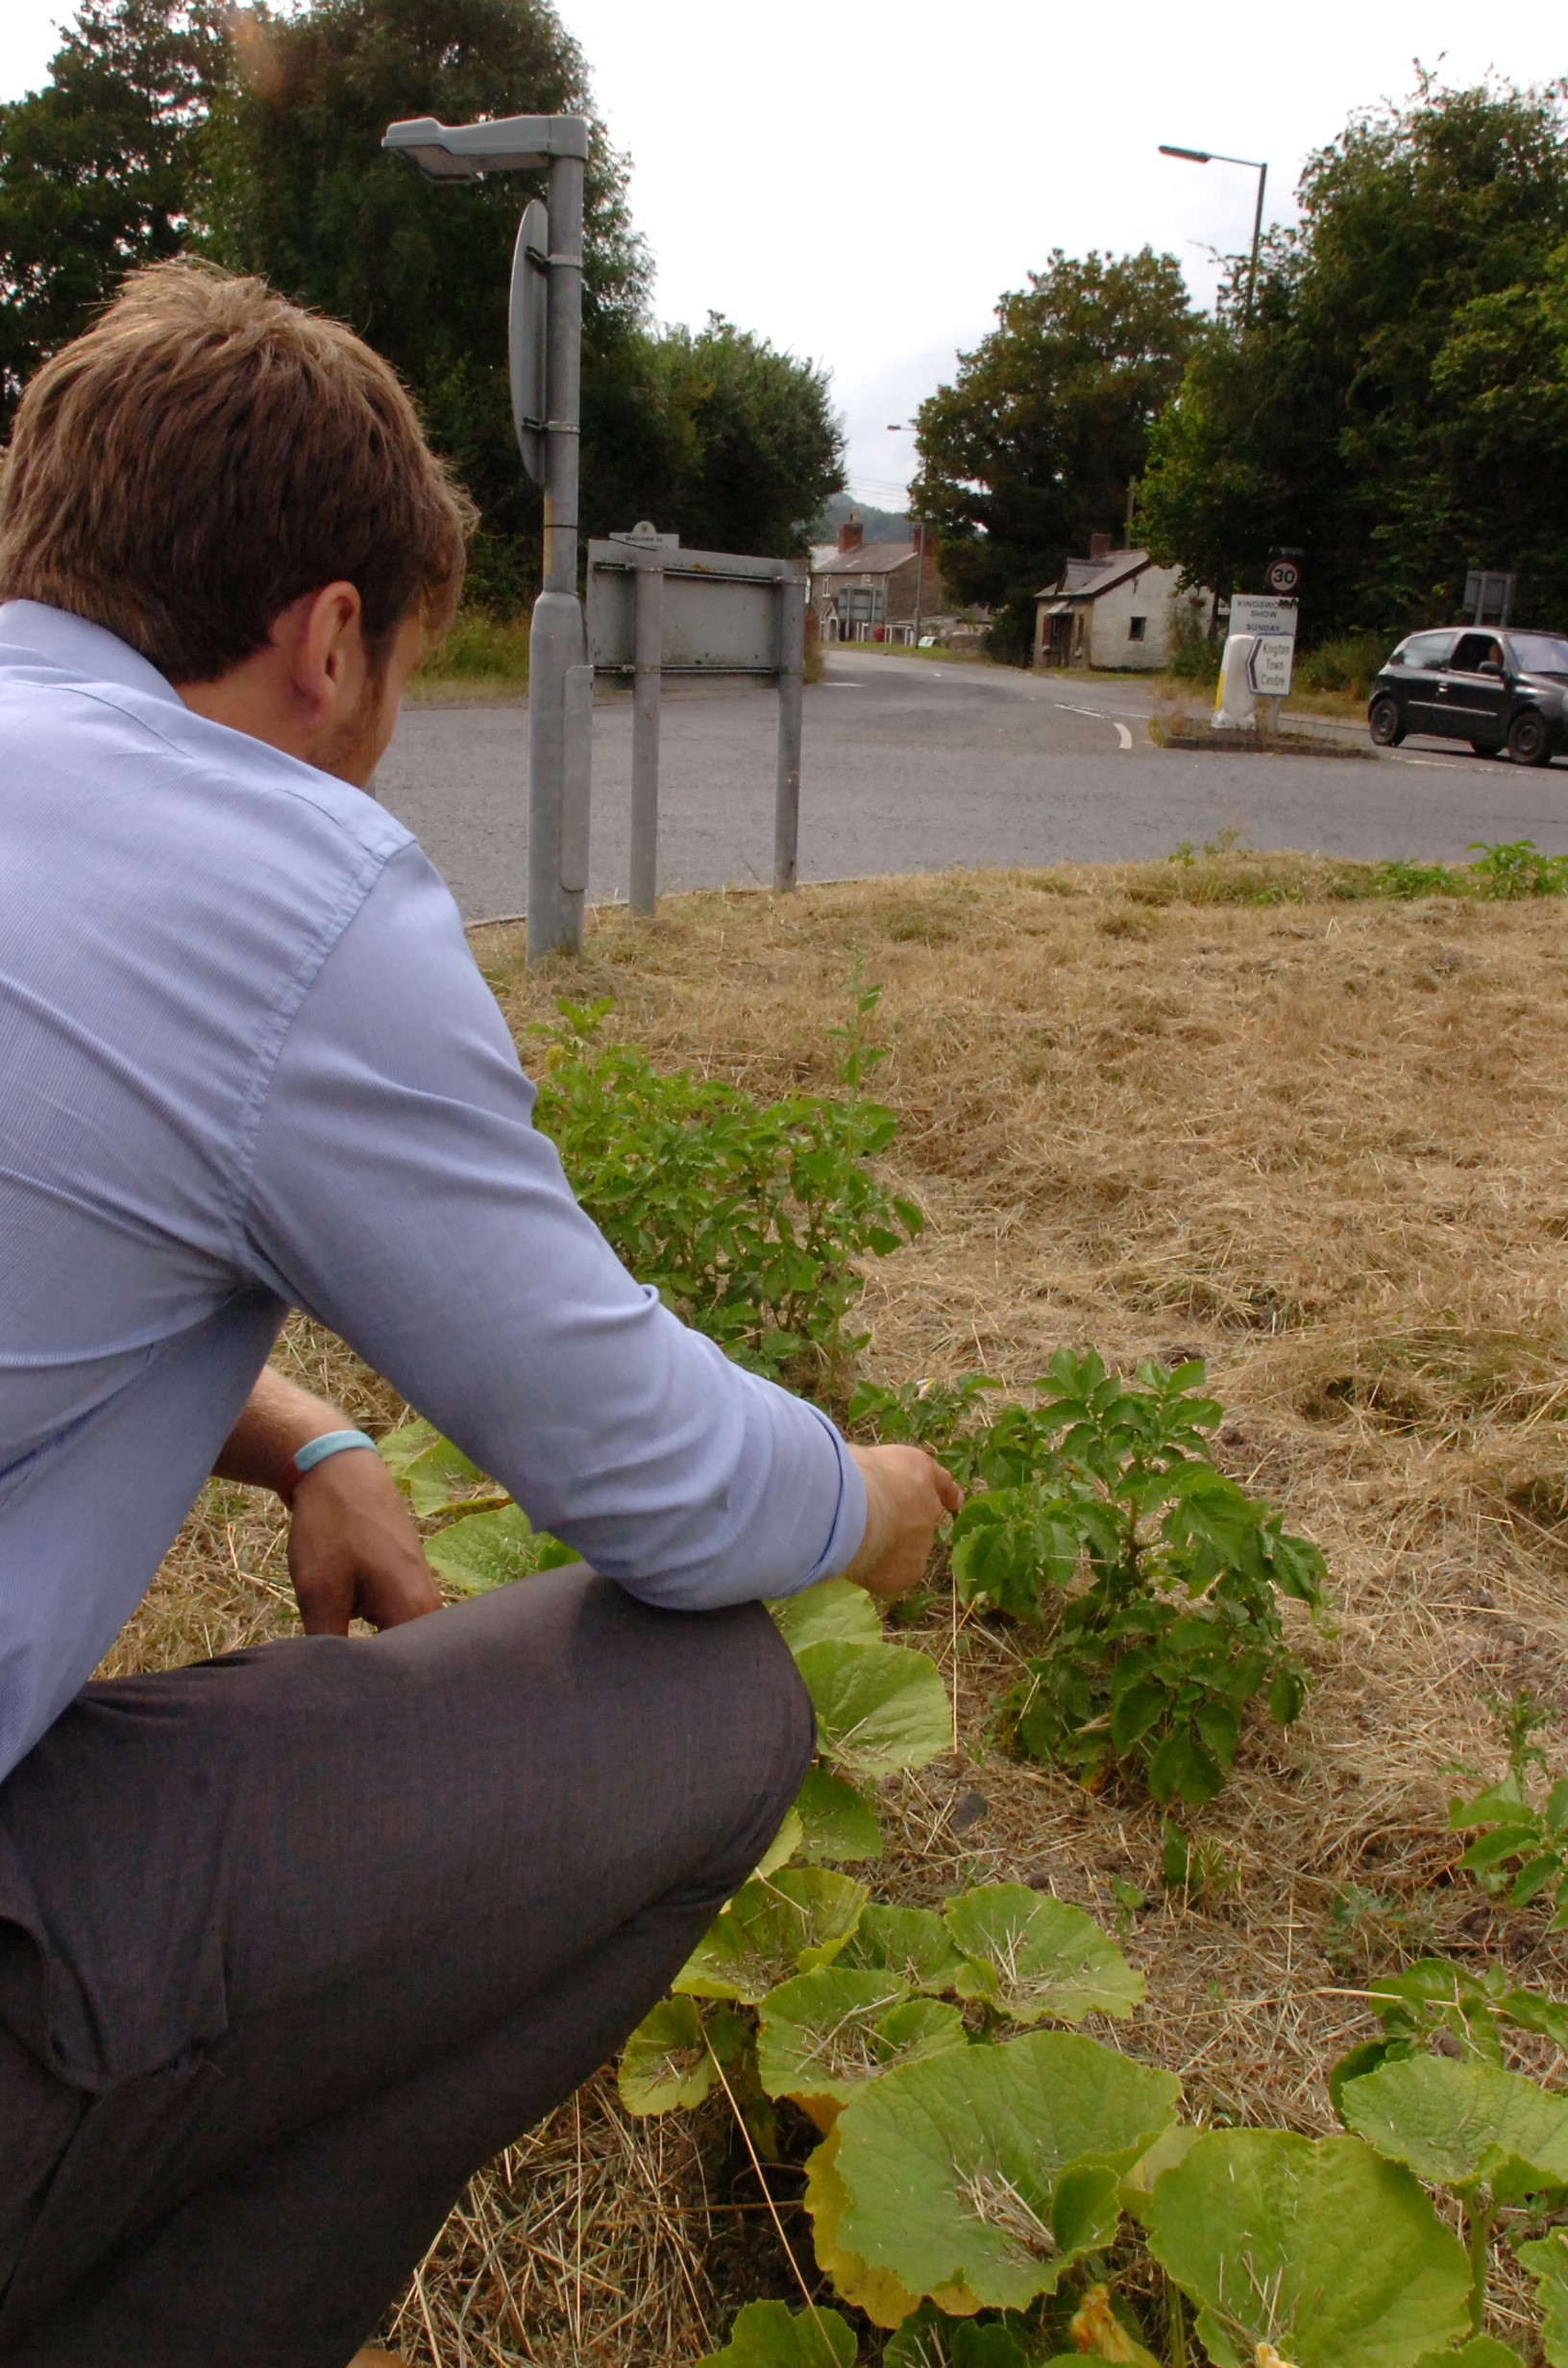 Pictures: Potatoes and pumpkin patch planted in Kington roundabout